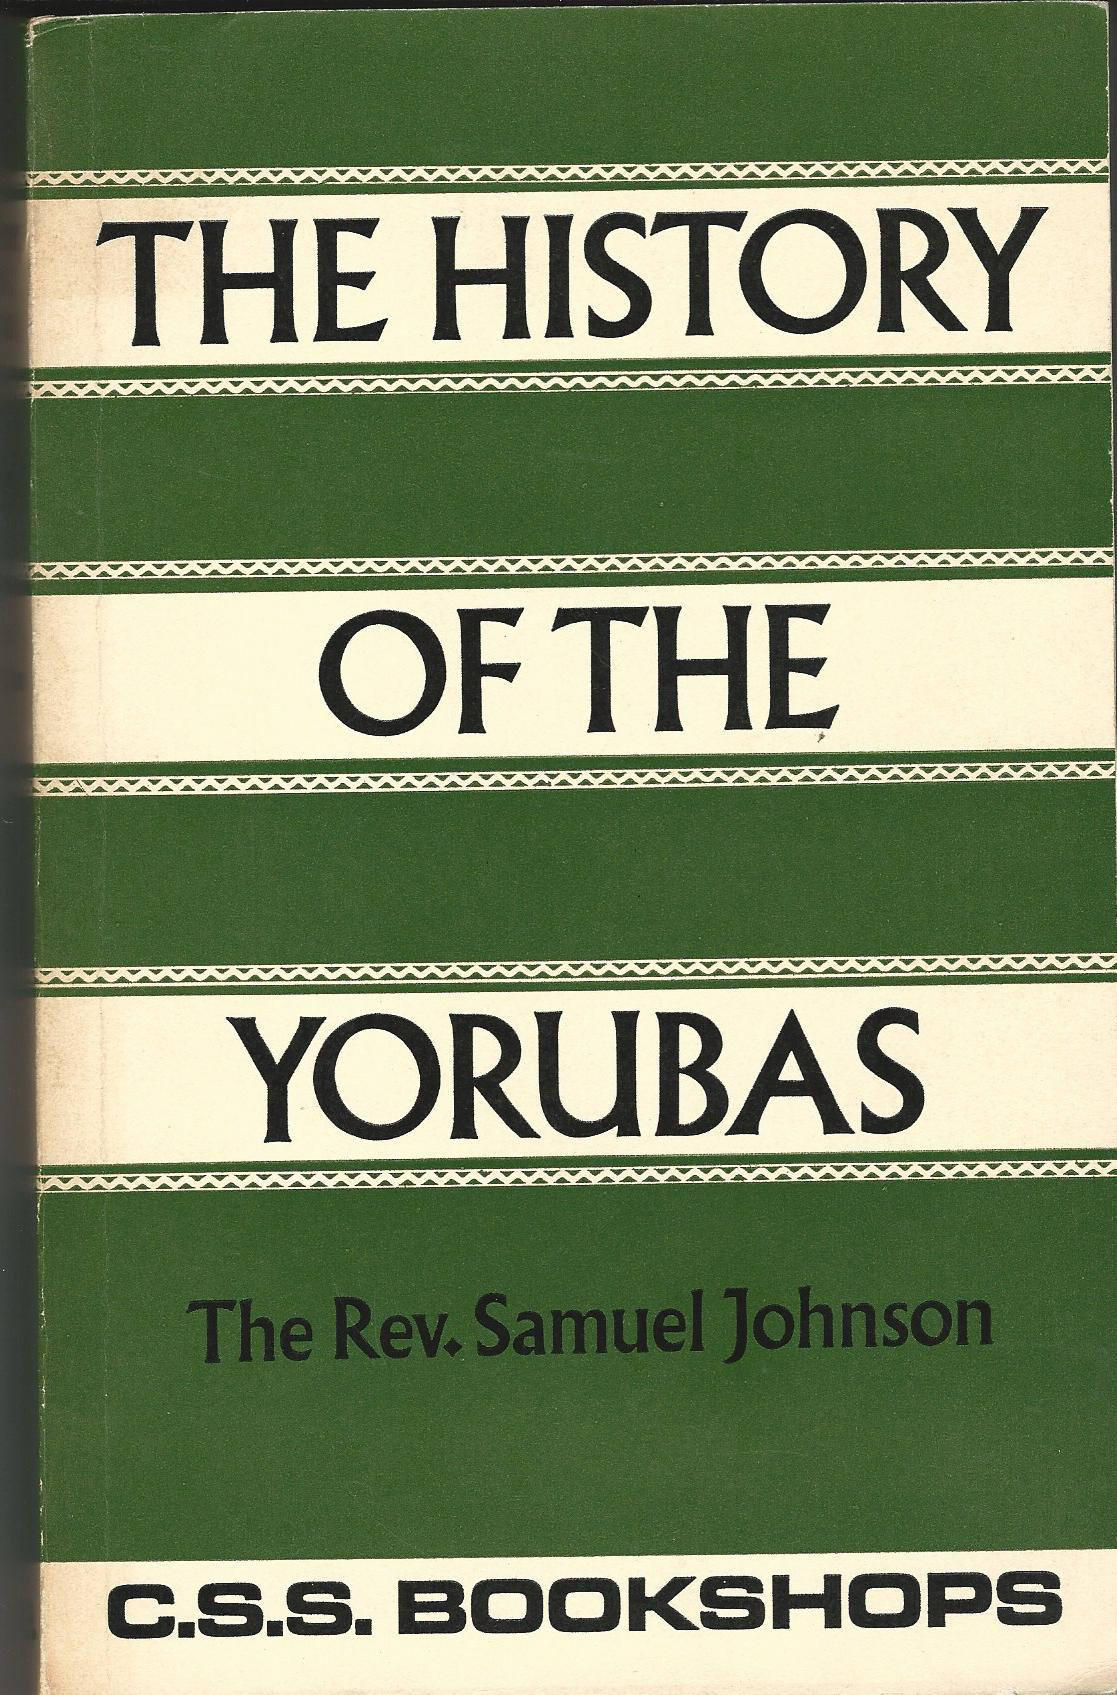 Image for The History of the Yorubas: From the Earliest Times to the Beginning of the British Protectorate